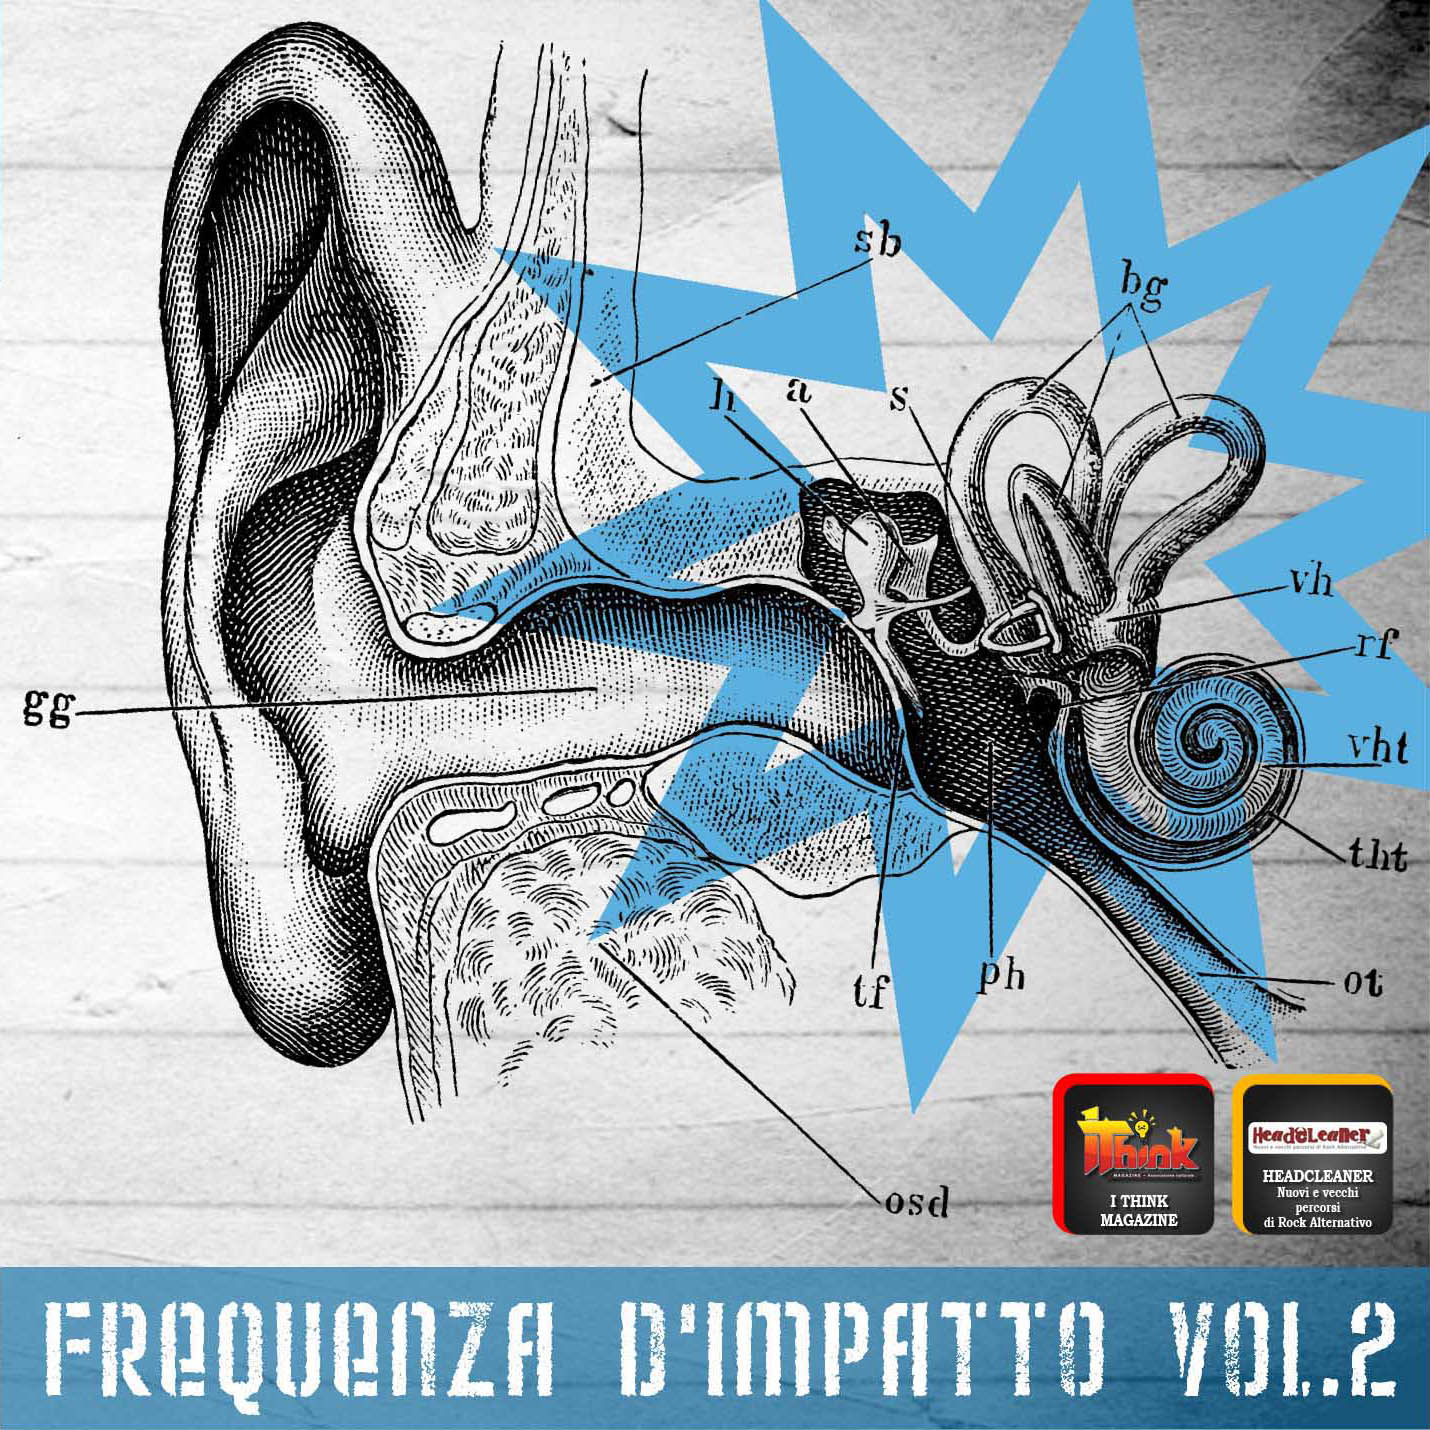 Frequenza d'Impatto Vol2 FRONT low